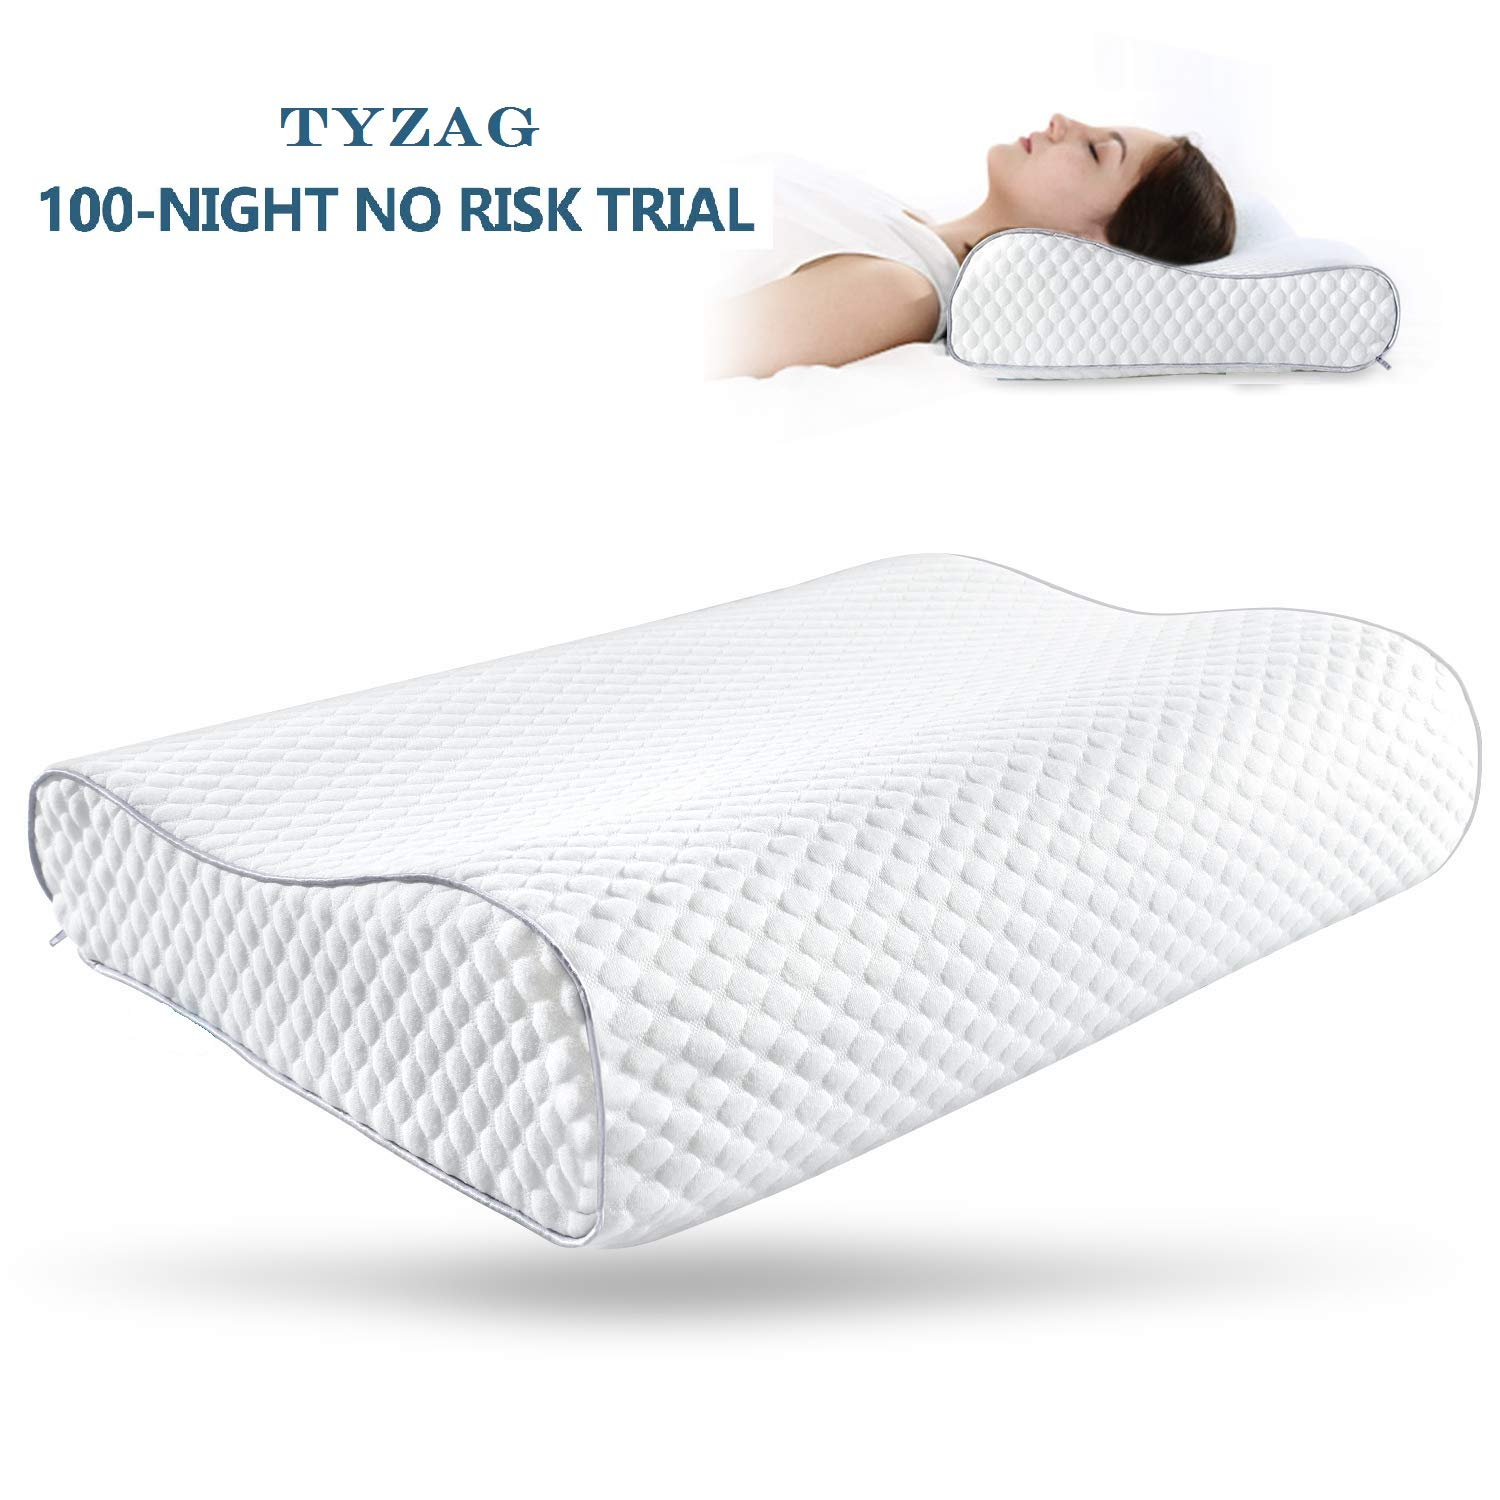 TYZAG Power by Orthopedic Memory Foam Pillow, Memory Pillow, Memory Foam Pillow for Sleeping, Memory Pillow for Neck Pain, Memory Pillow for Sleeping, Pillows (White) product image